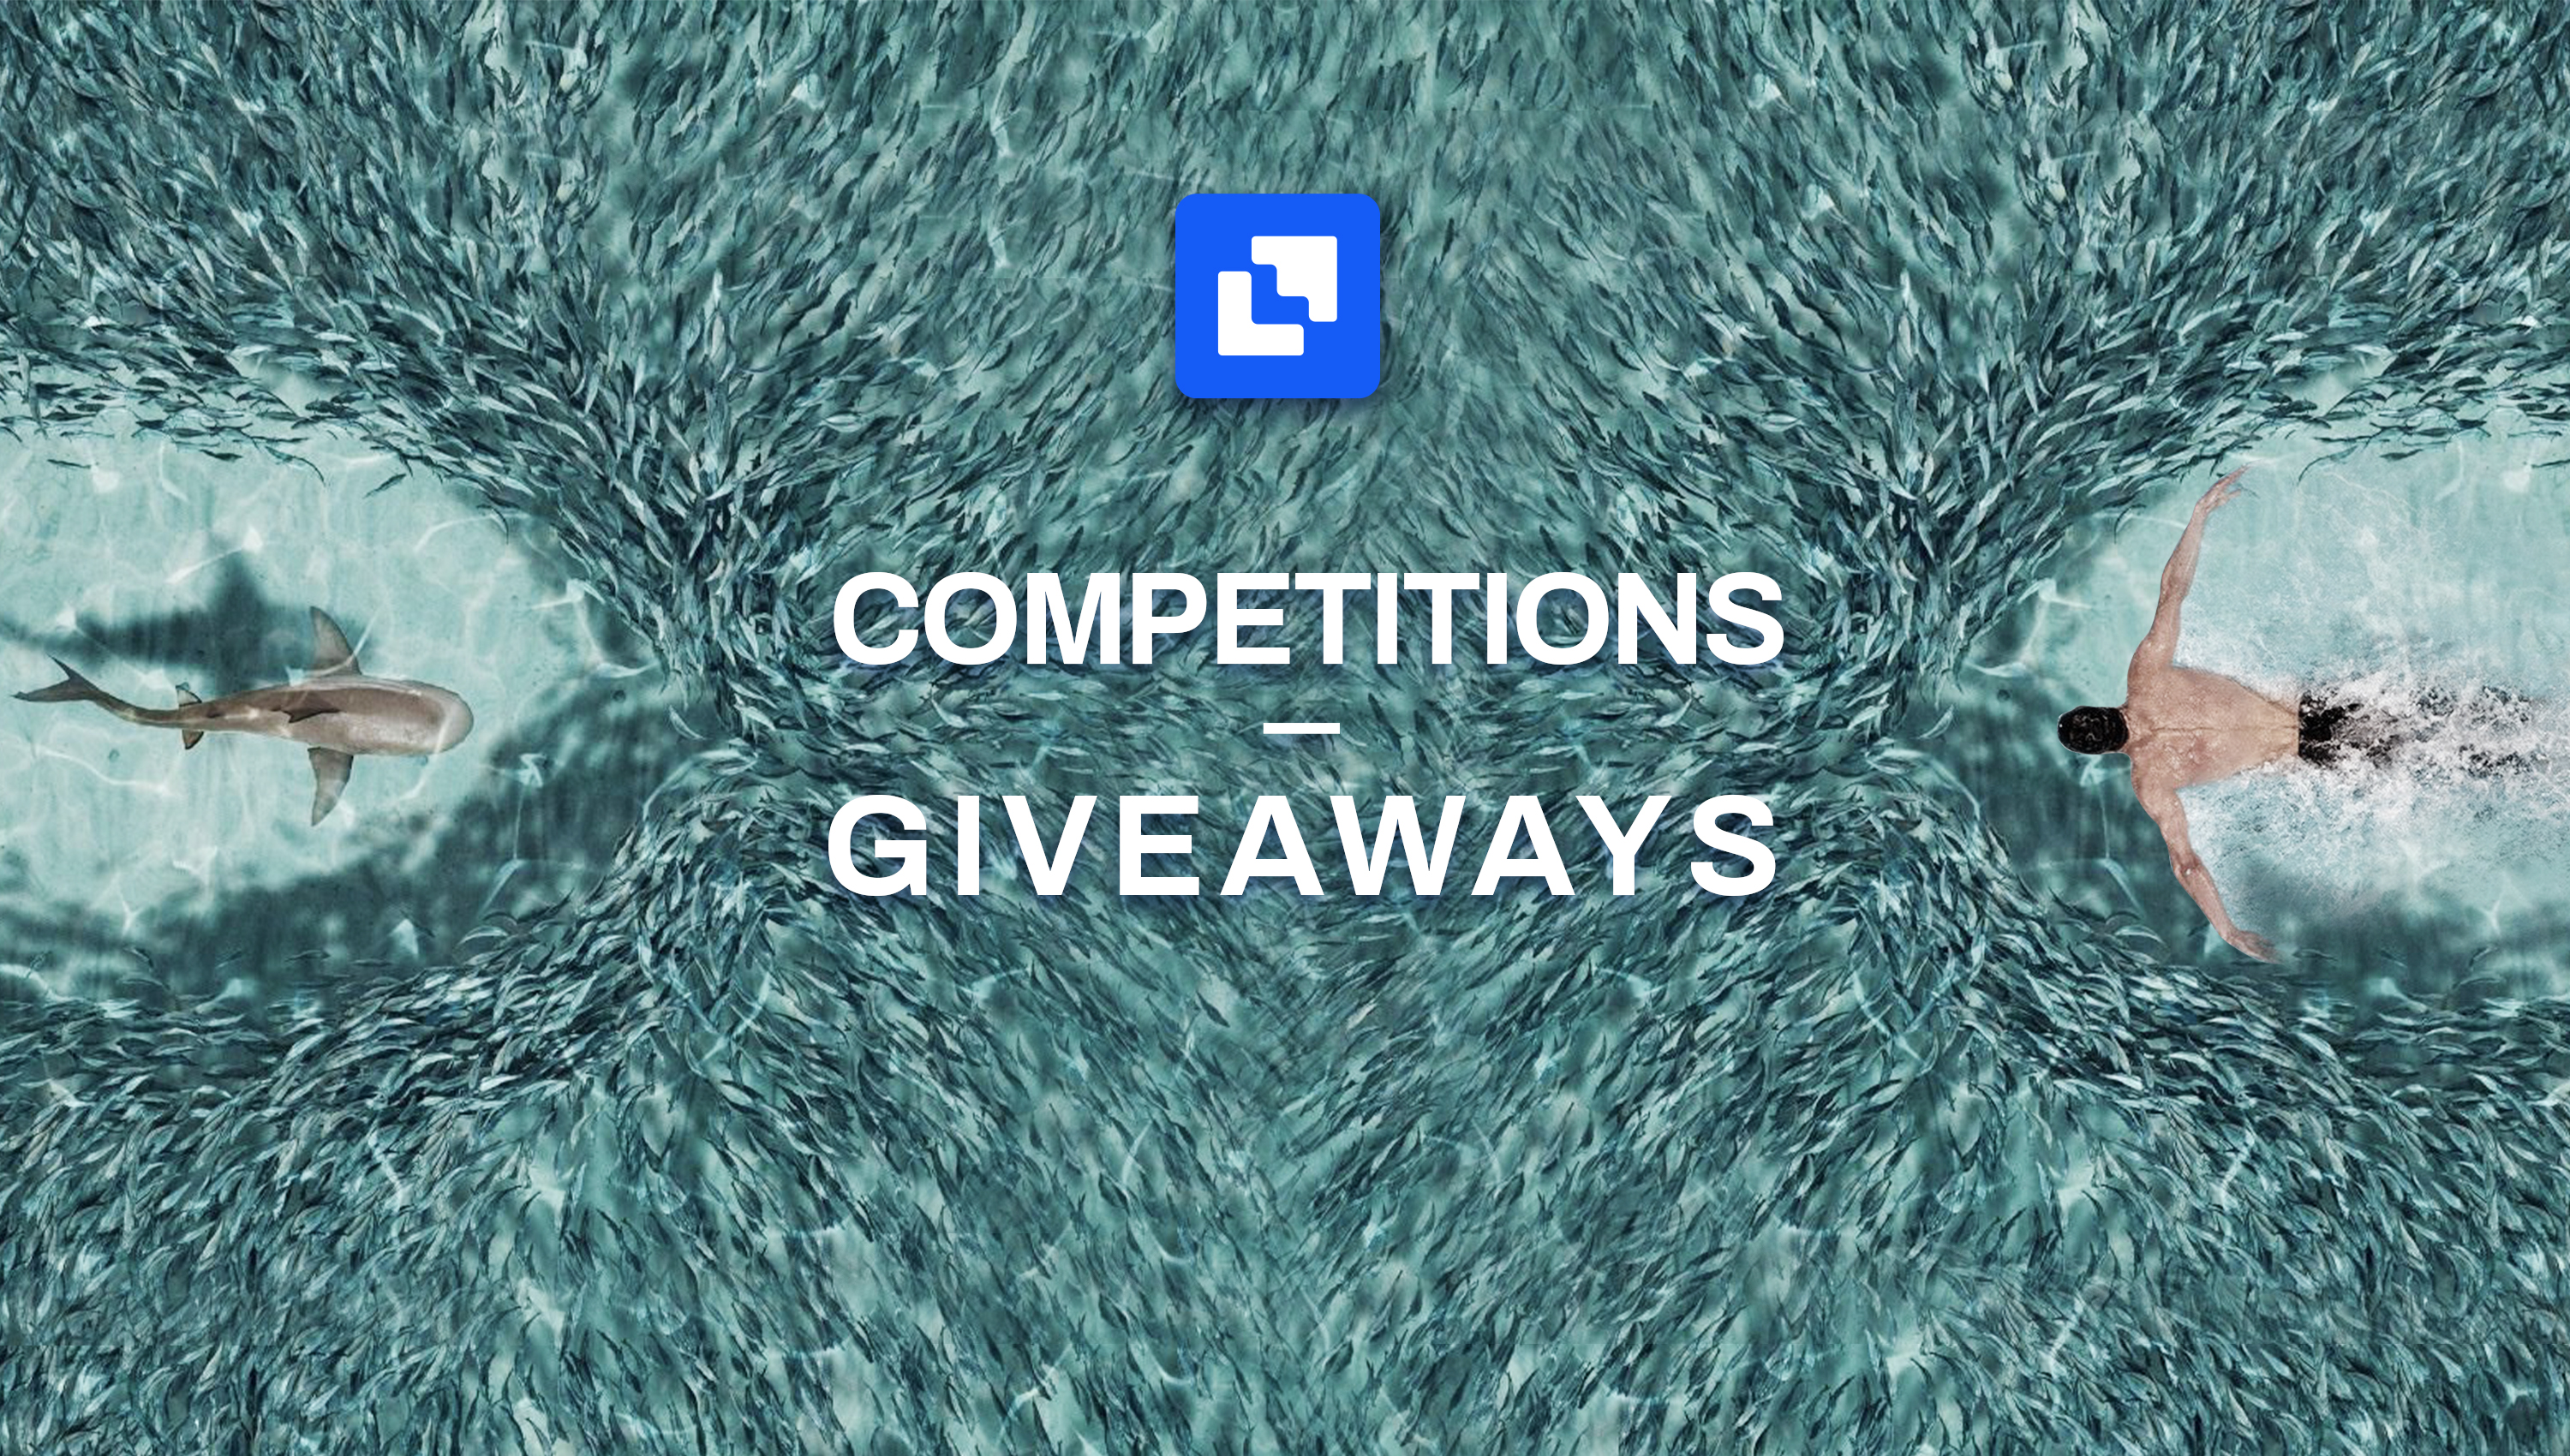 Competitions & Giveaways